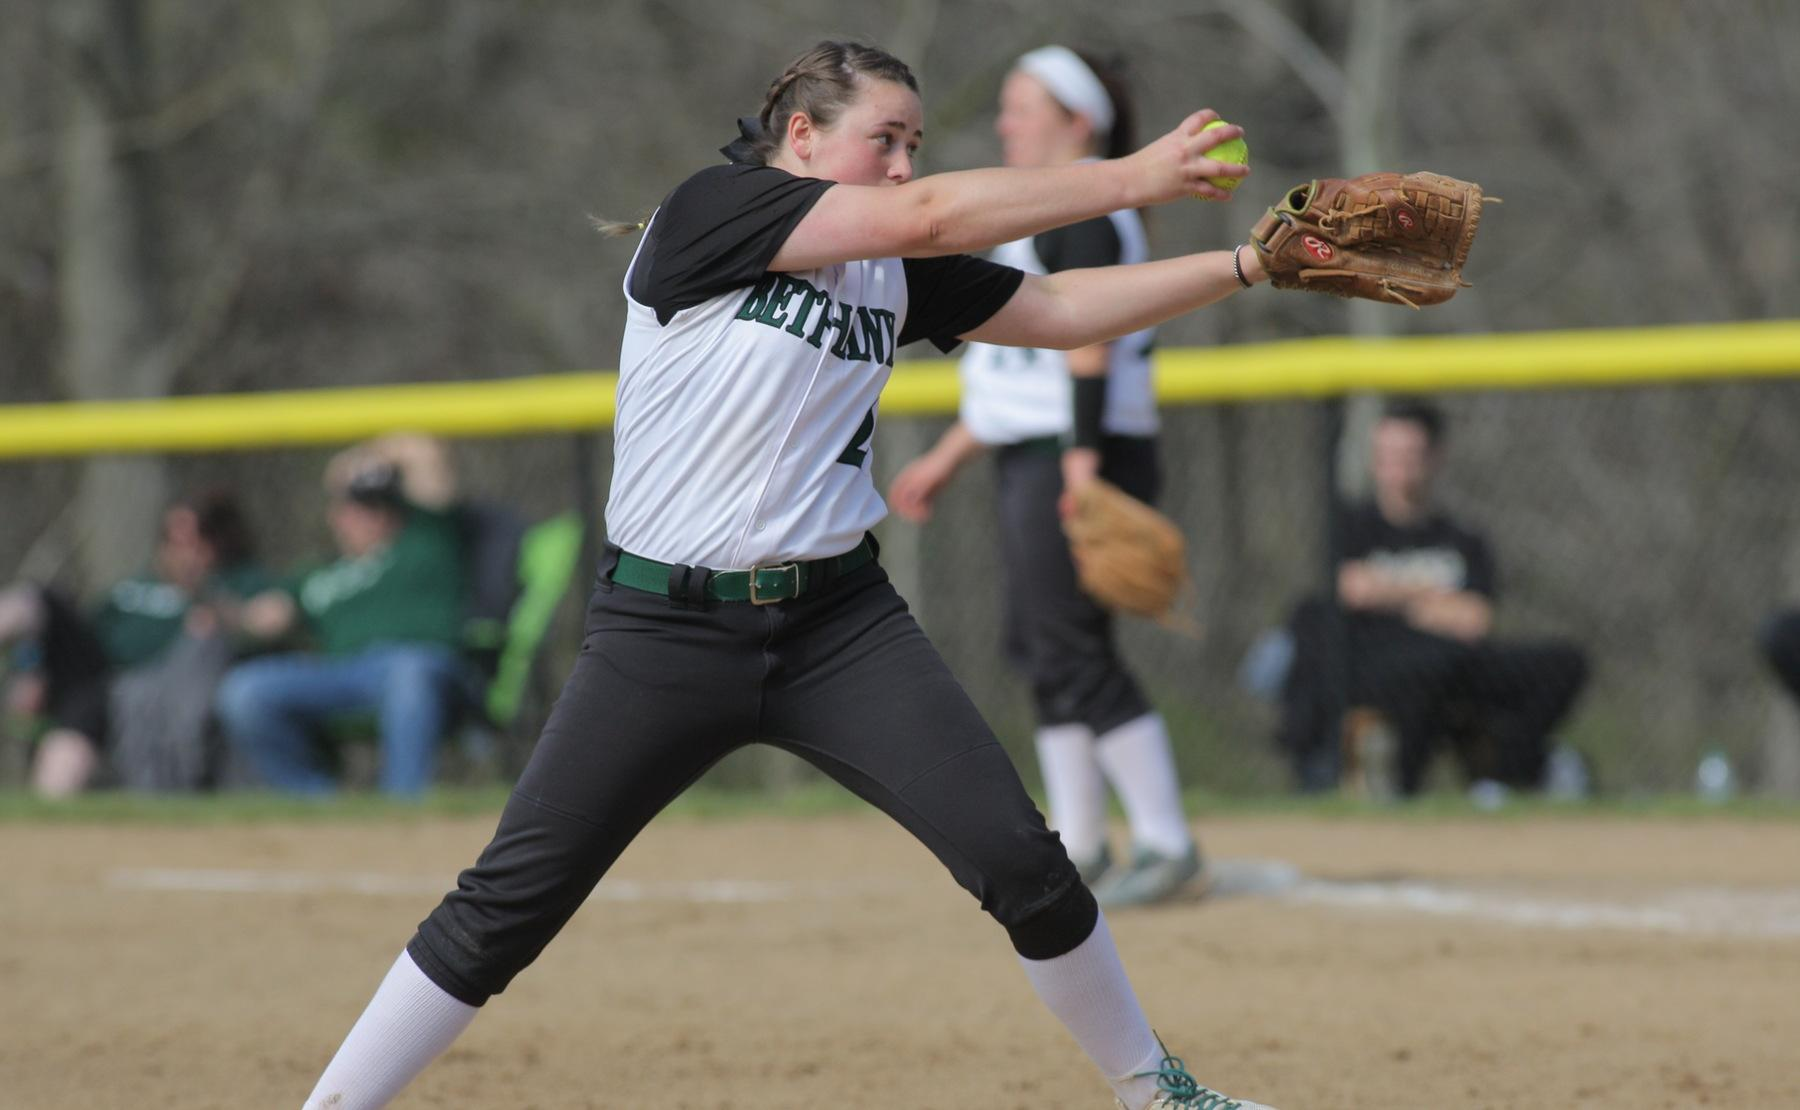 Bethany defeats Coast Guard, Becker at PFX Spring Games